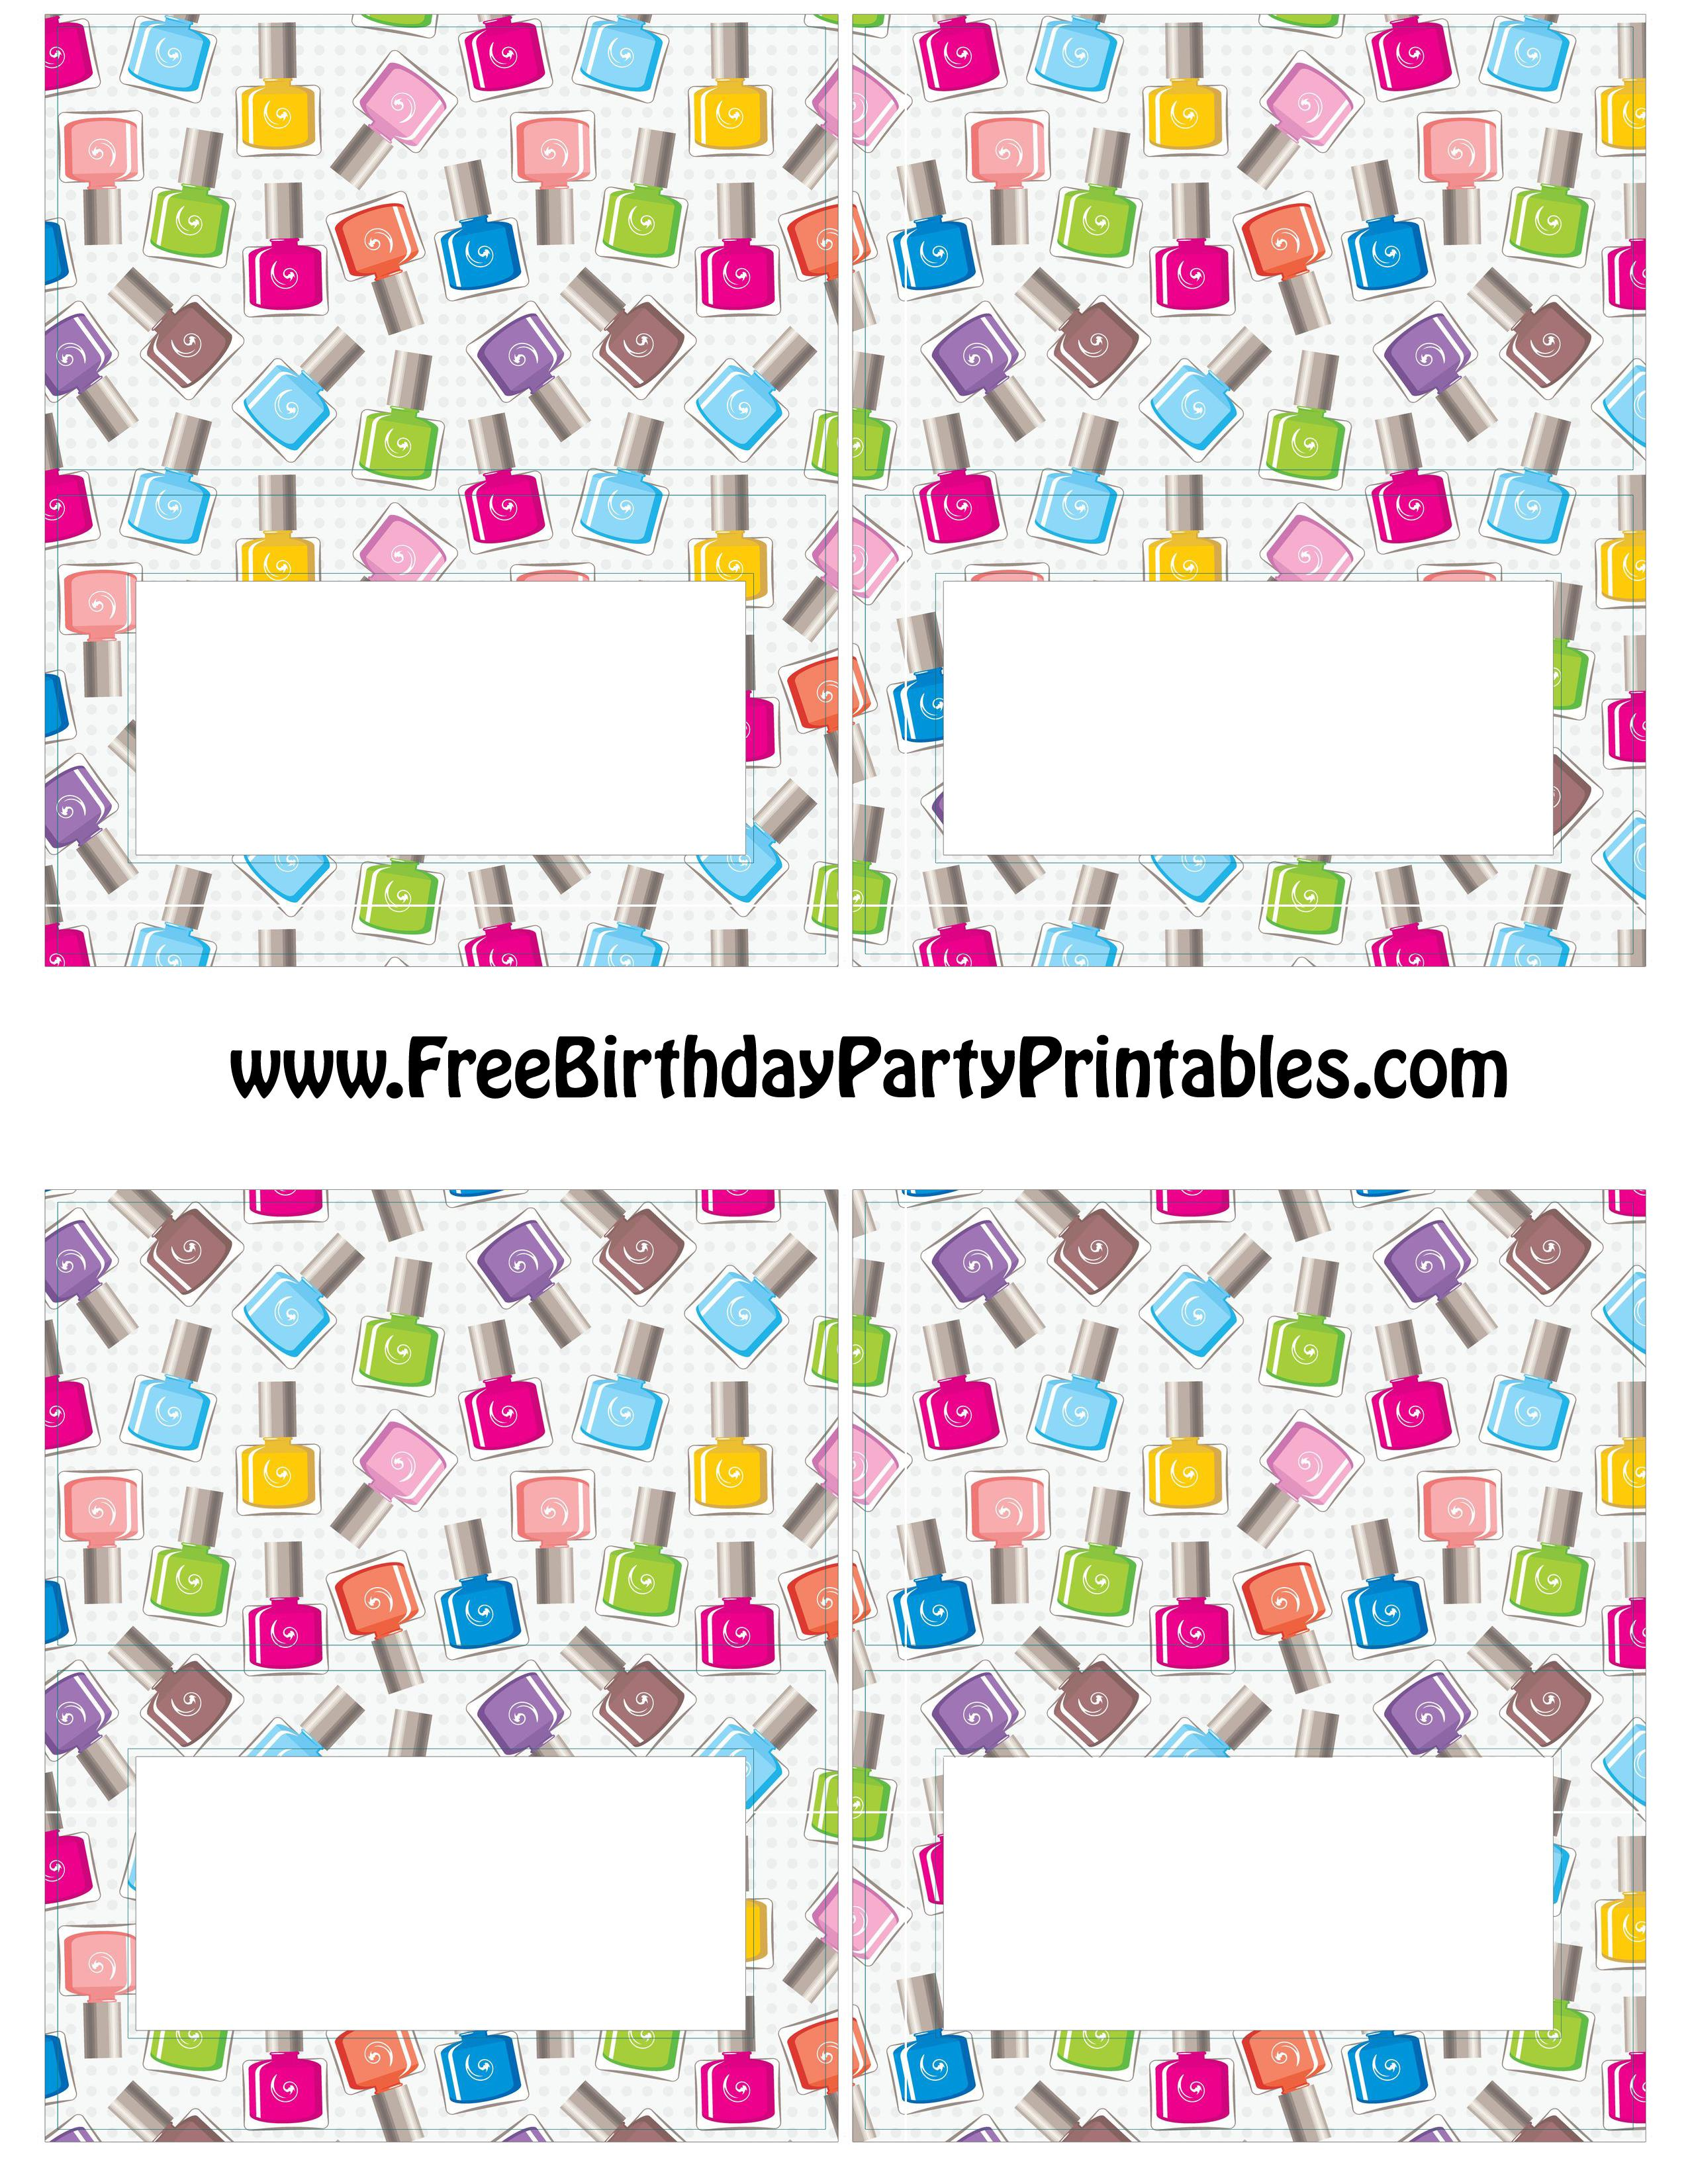 free printable birthday party labels ; Free%2520Nail%2520Polish%2520Birthday%2520Party%2520Food%2520Tent%2520Card%2520Template%2520by%2520Free%2520Birthday%2520Party%2520Printables%2520Blank